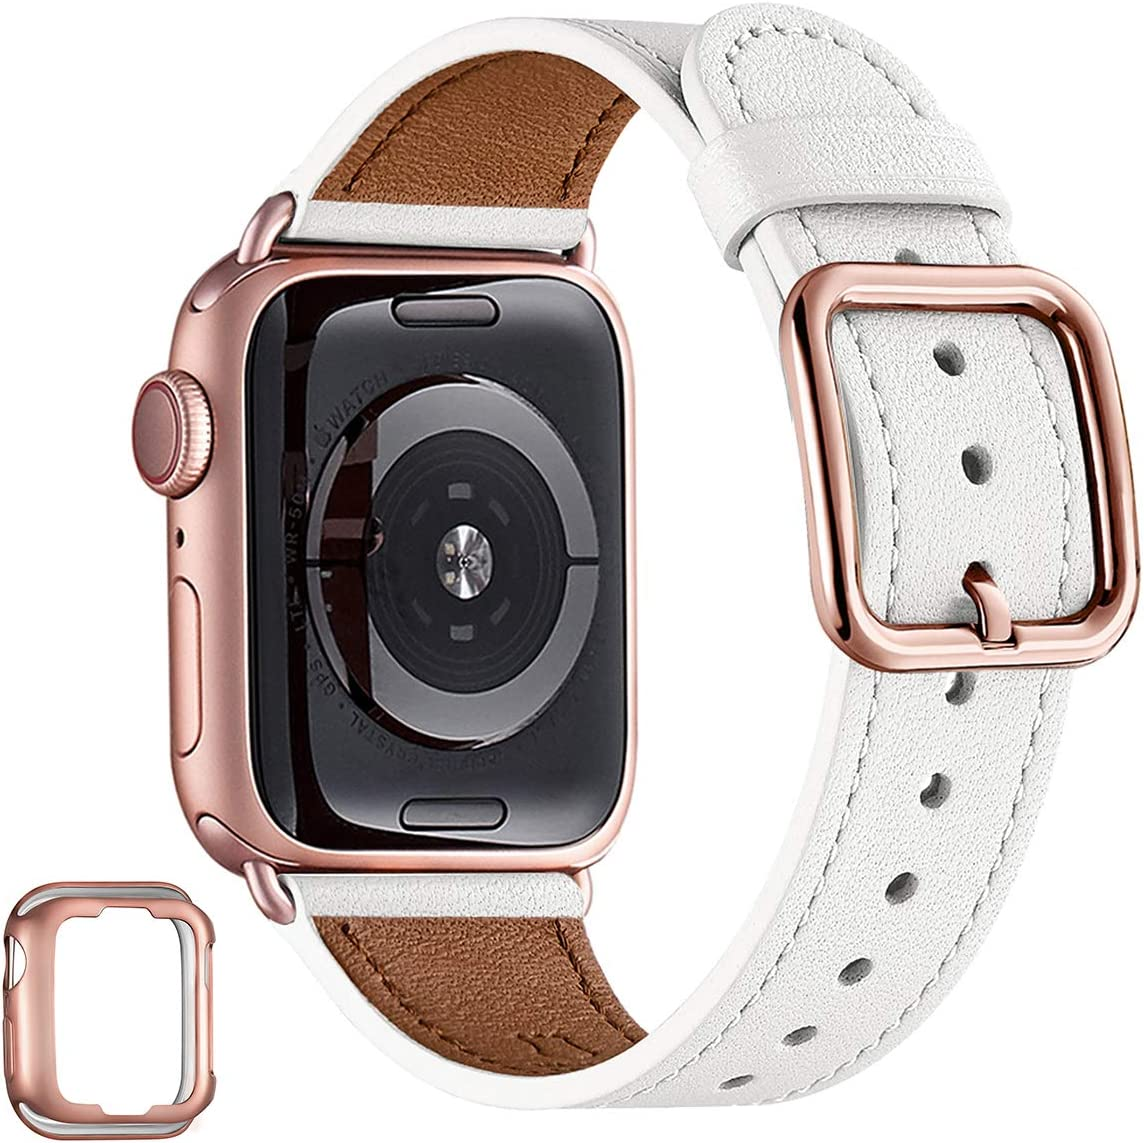 MNBVCXZ Compatible with Apple Watch Band 38mm 40mm 42mm 44mm Women Men Girls Boys Genuine Leather Replacement Strap for iWatch Series 6 5 4 3 2 1 iWatch SE (White/Rose Gold, 38mm 40mm)